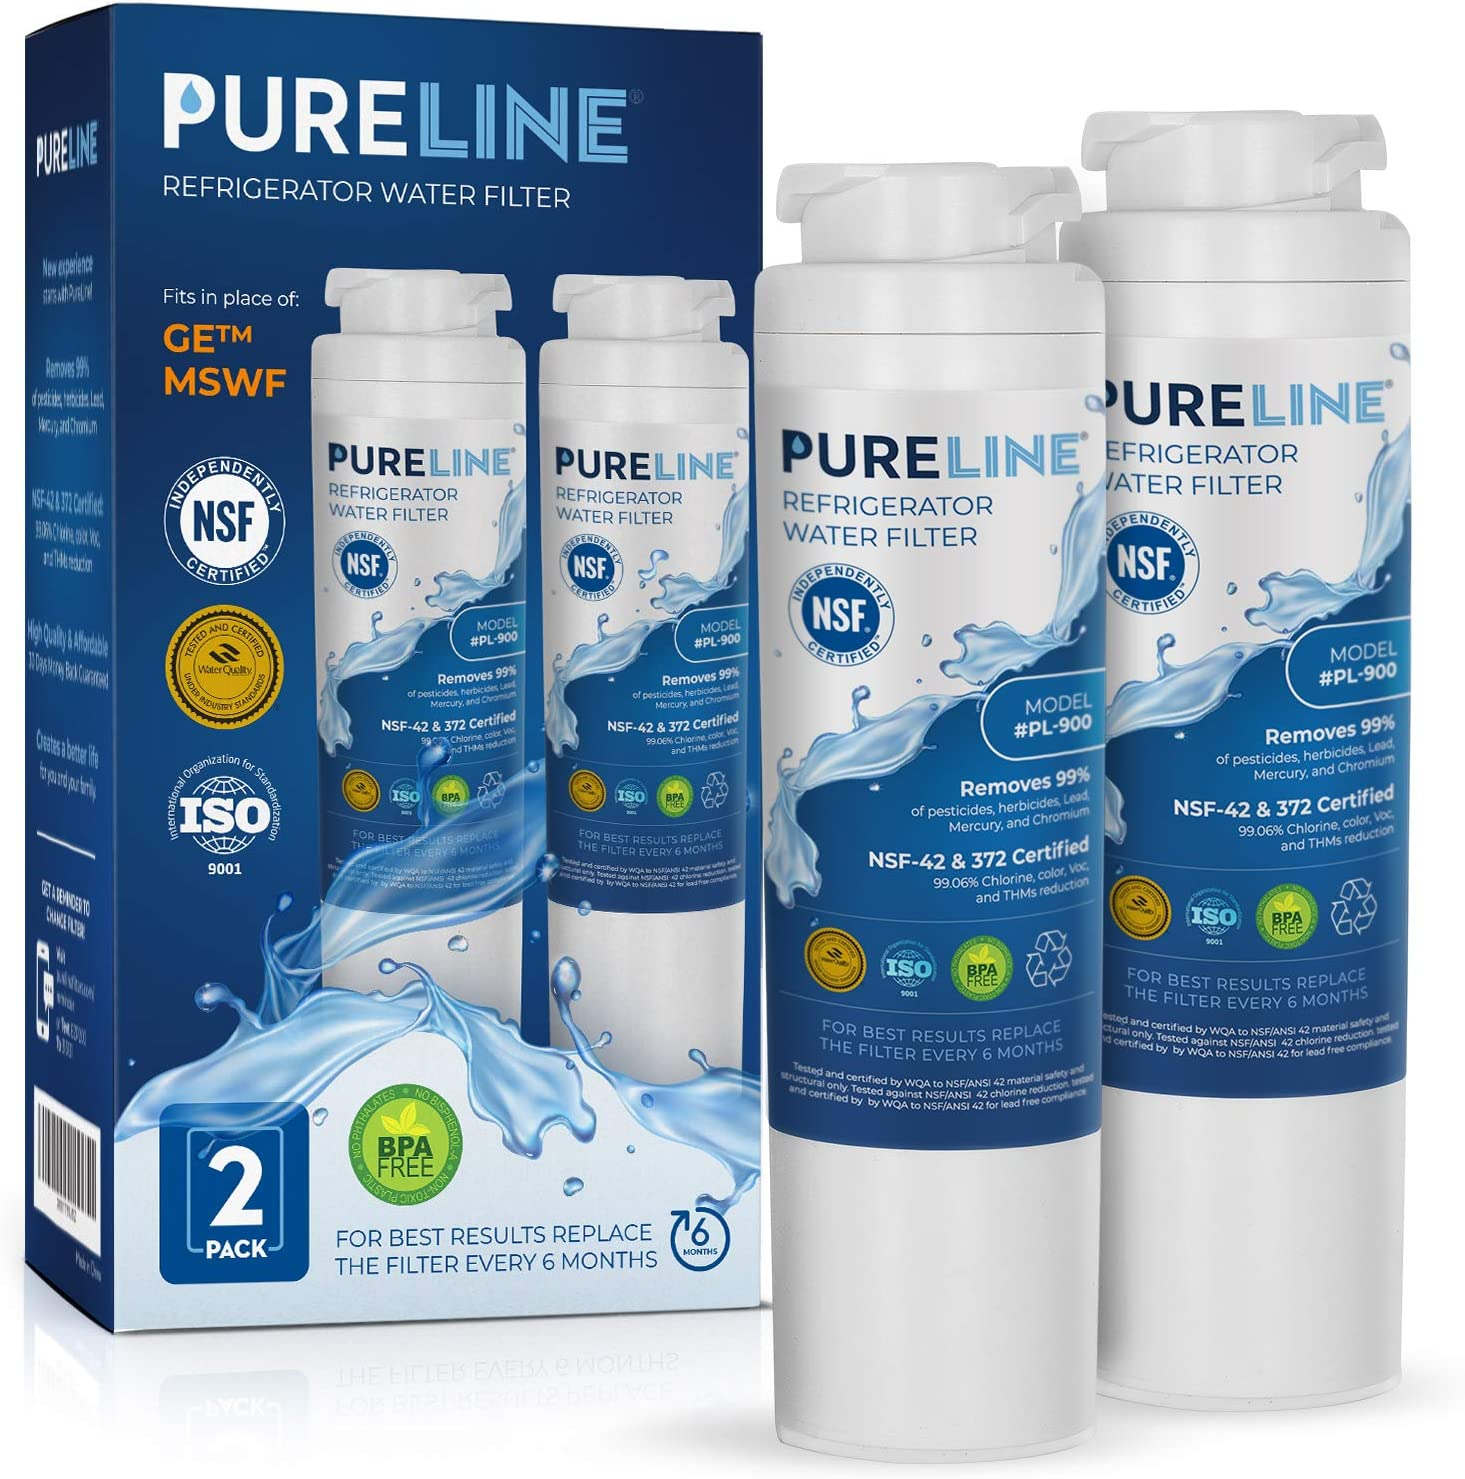 GE MSWF Certified Premium Water Filter Replacement. Designed to Exact Fit & Compatibility as the Original GE MSWF Filter.- PURELINE (2 Pack)